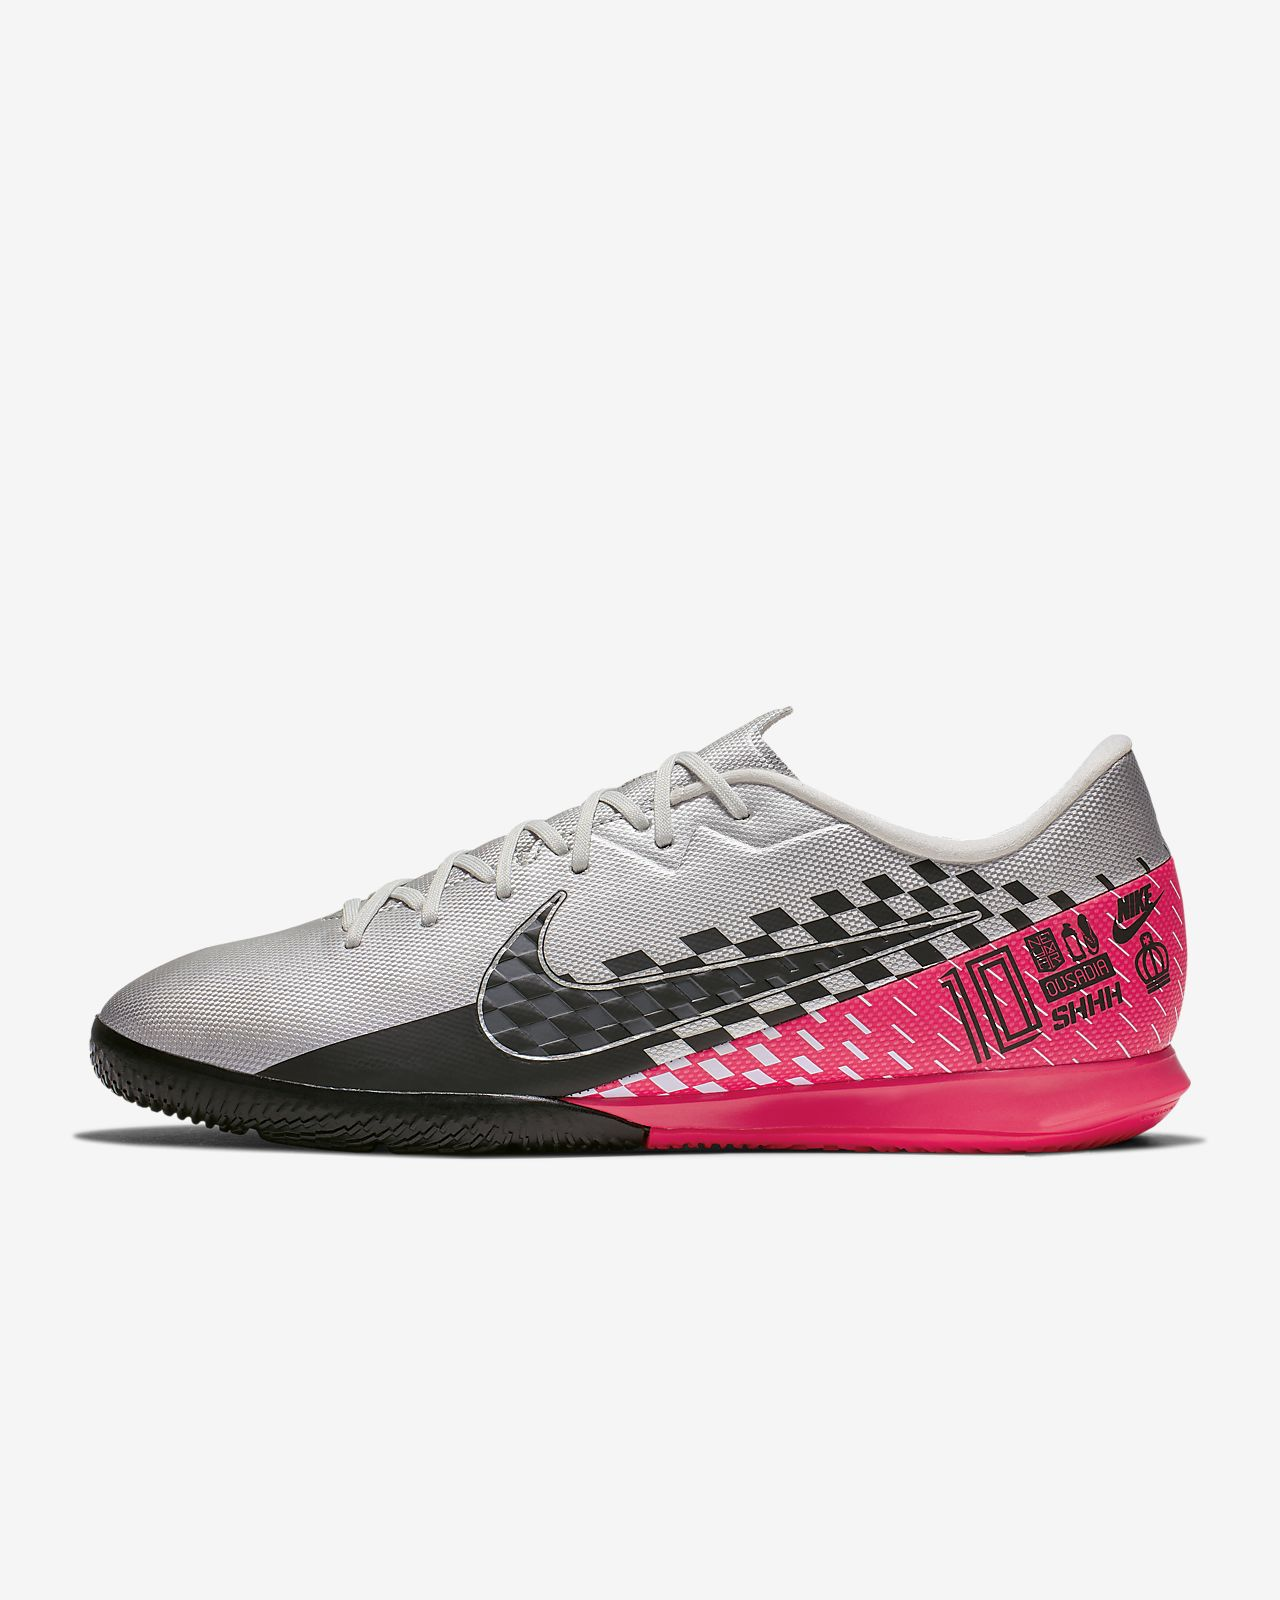 competitive price incredible prices online store incredible prices best place factory outlets nike mercurial bitume ...